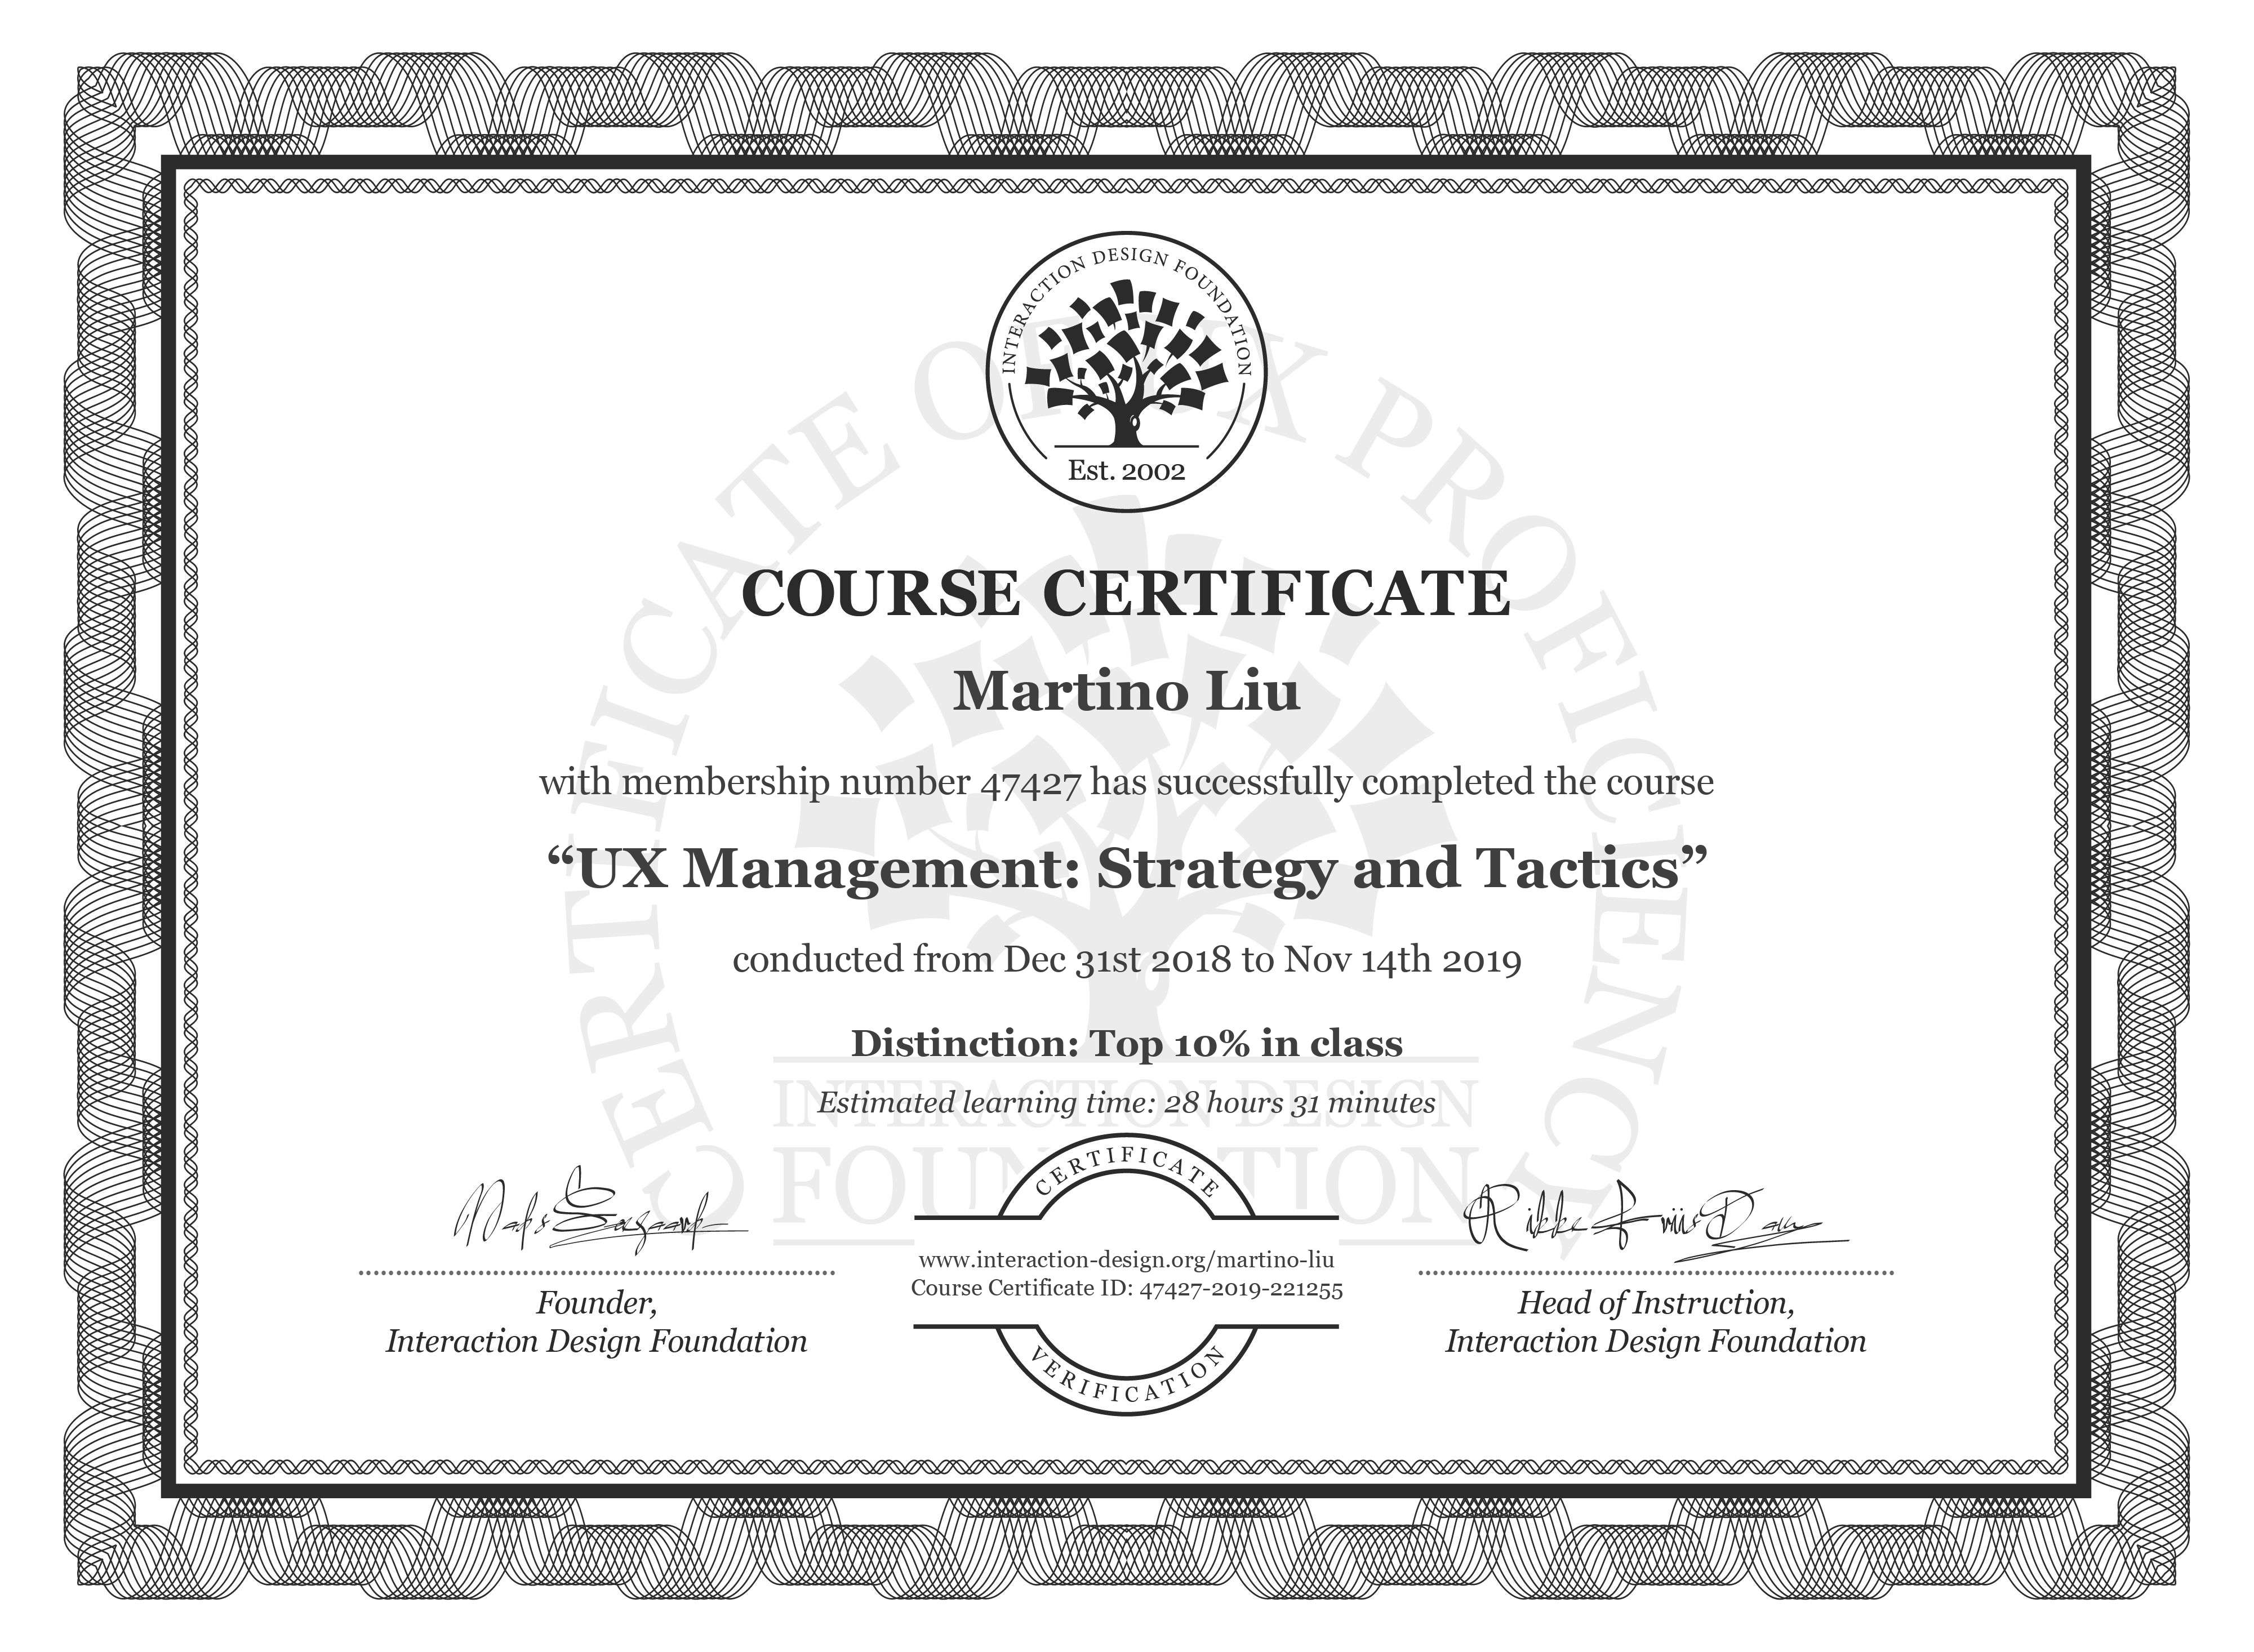 Martino Liu's Course Certificate: UX Management: Strategy and Tactics